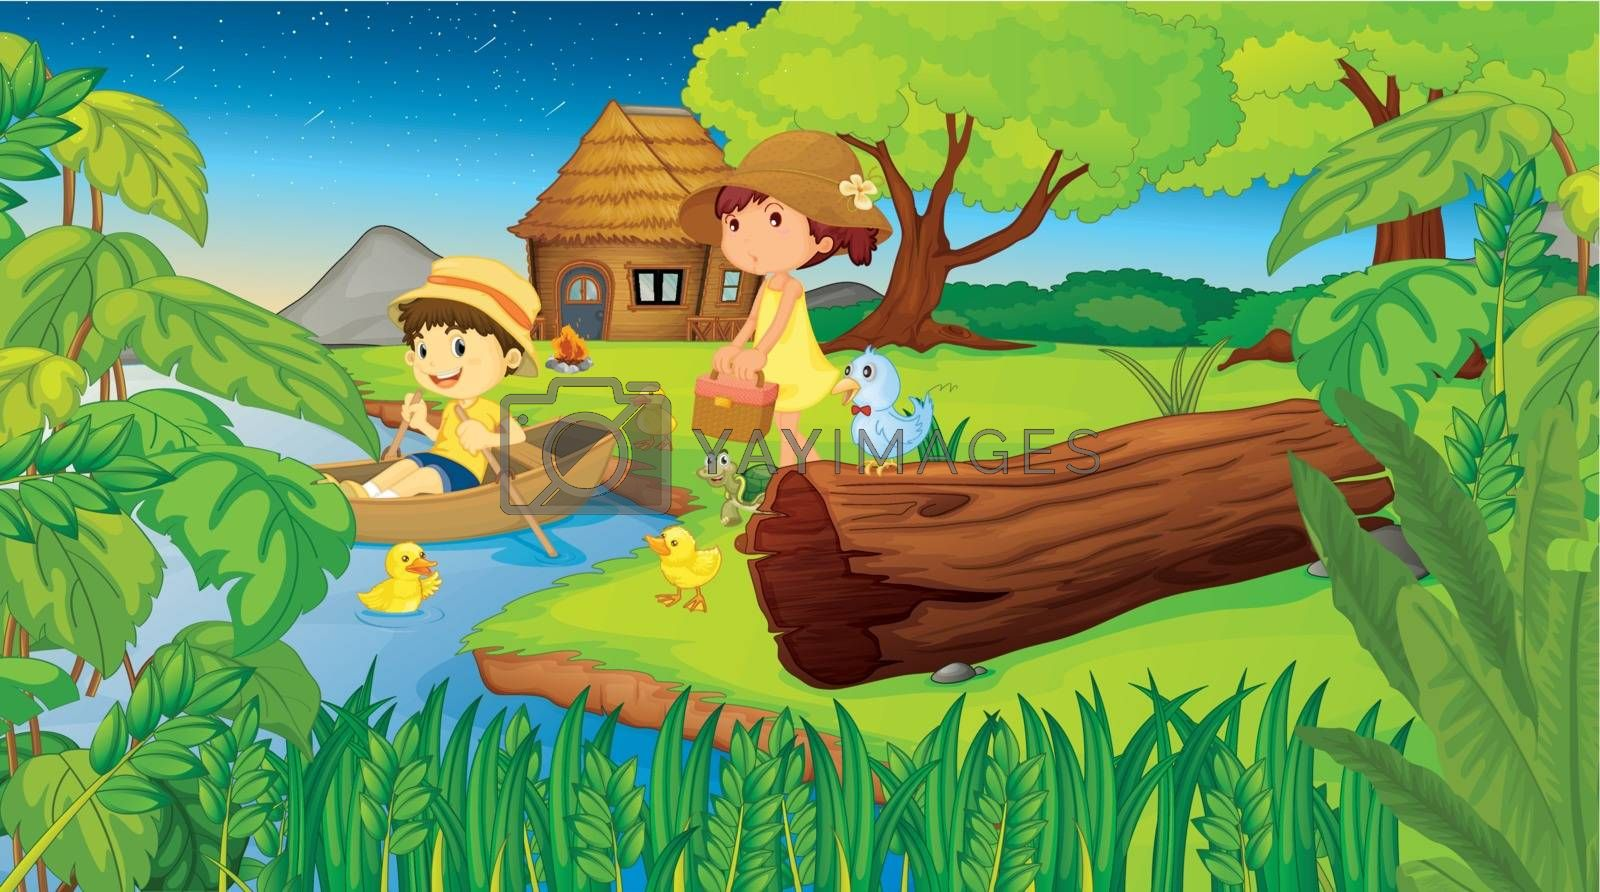 Illustration of 2 children camping in the woods